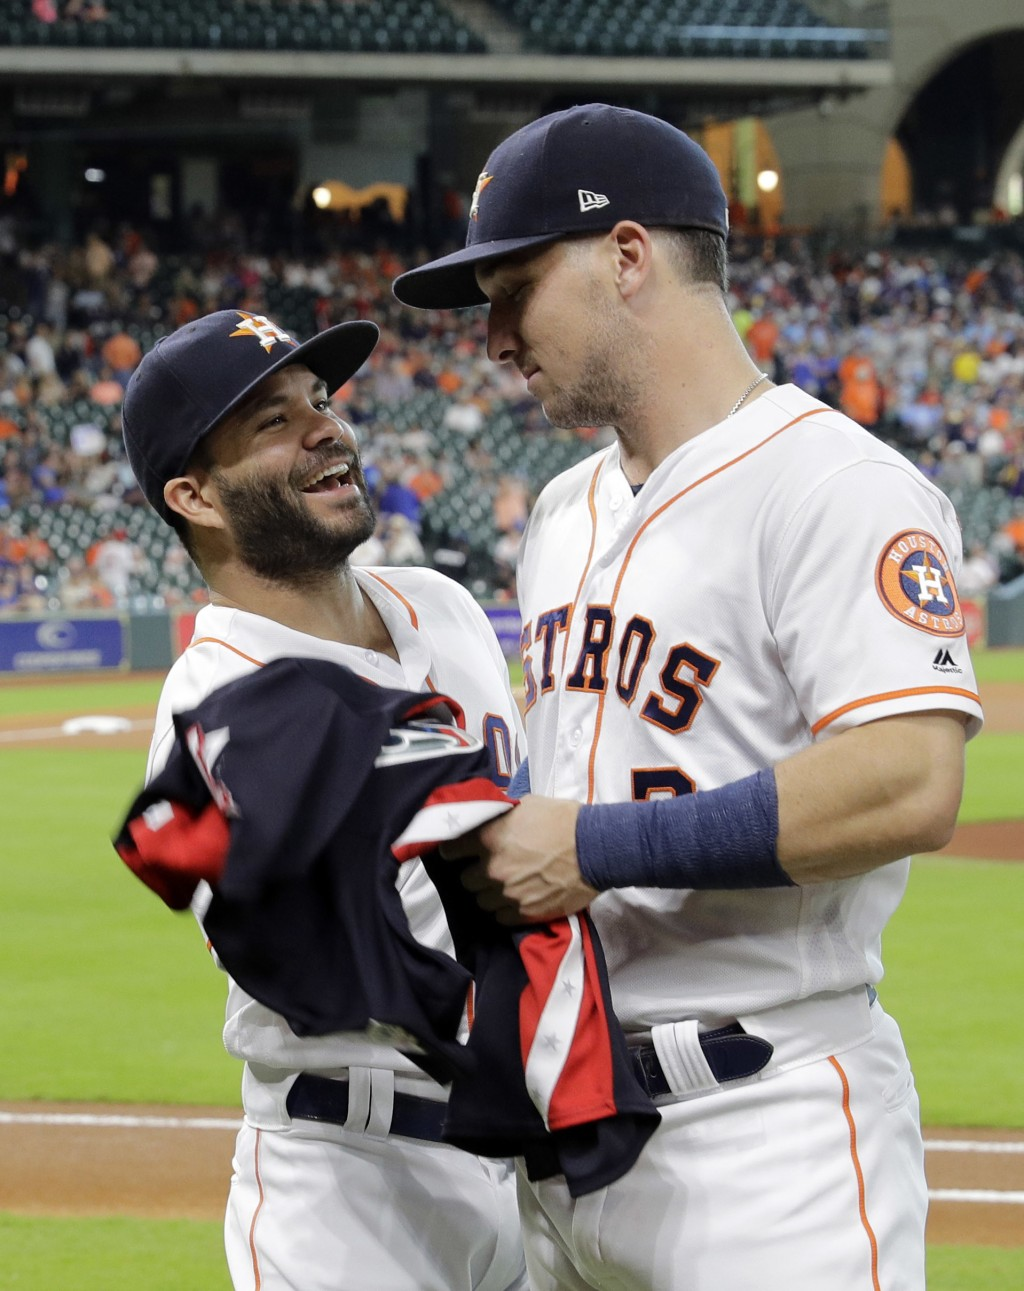 Houston Astros' Jose Altuve, left, jokes with Alex Bregman after they were presented their All-Star jerseys before a baseball game against the Oakland